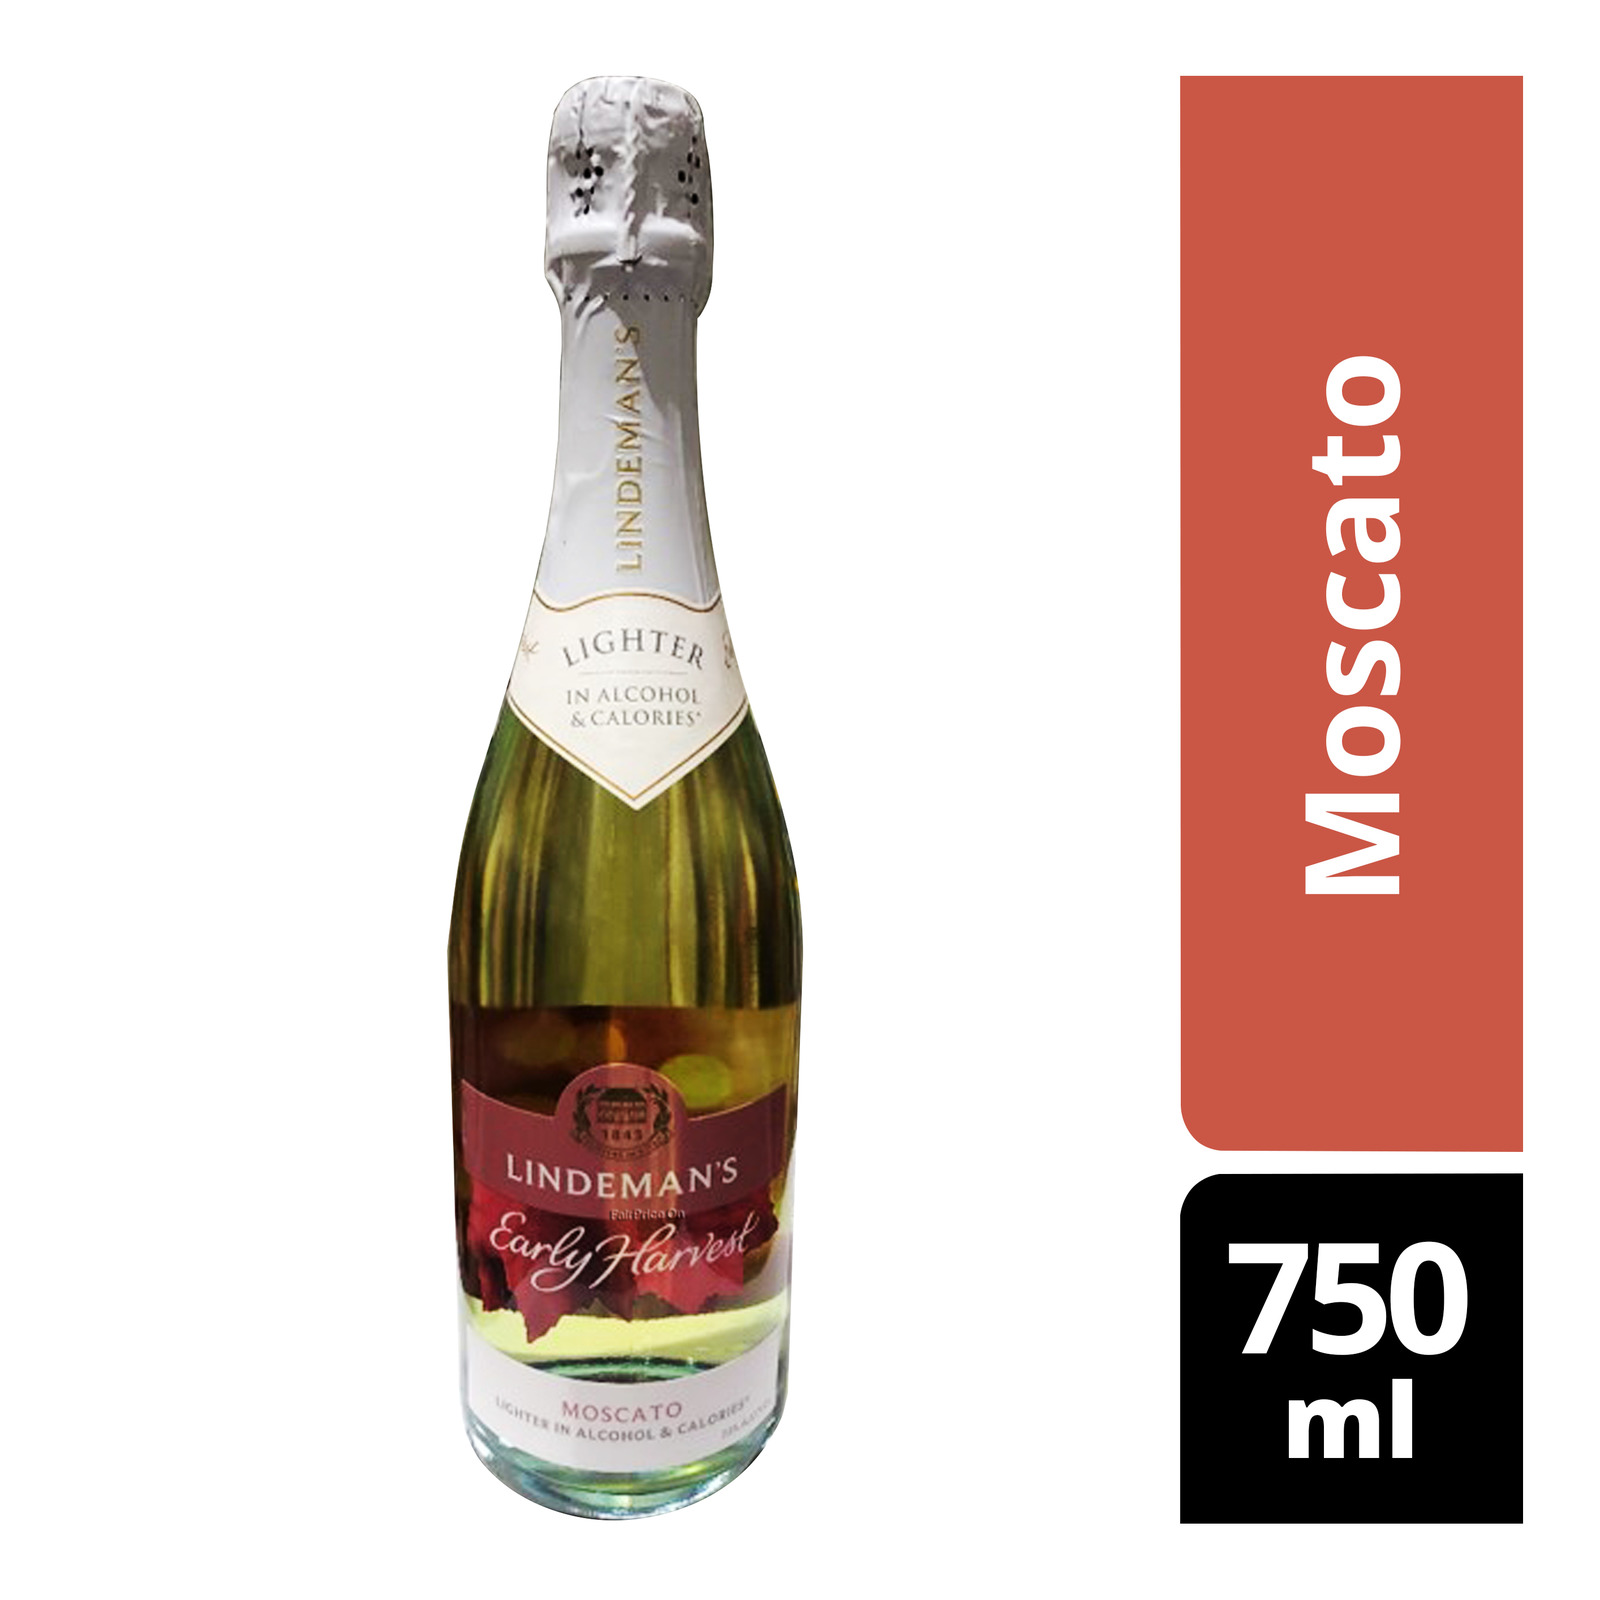 Lindeman's Early Harvest Sparkling Wine - Moscato